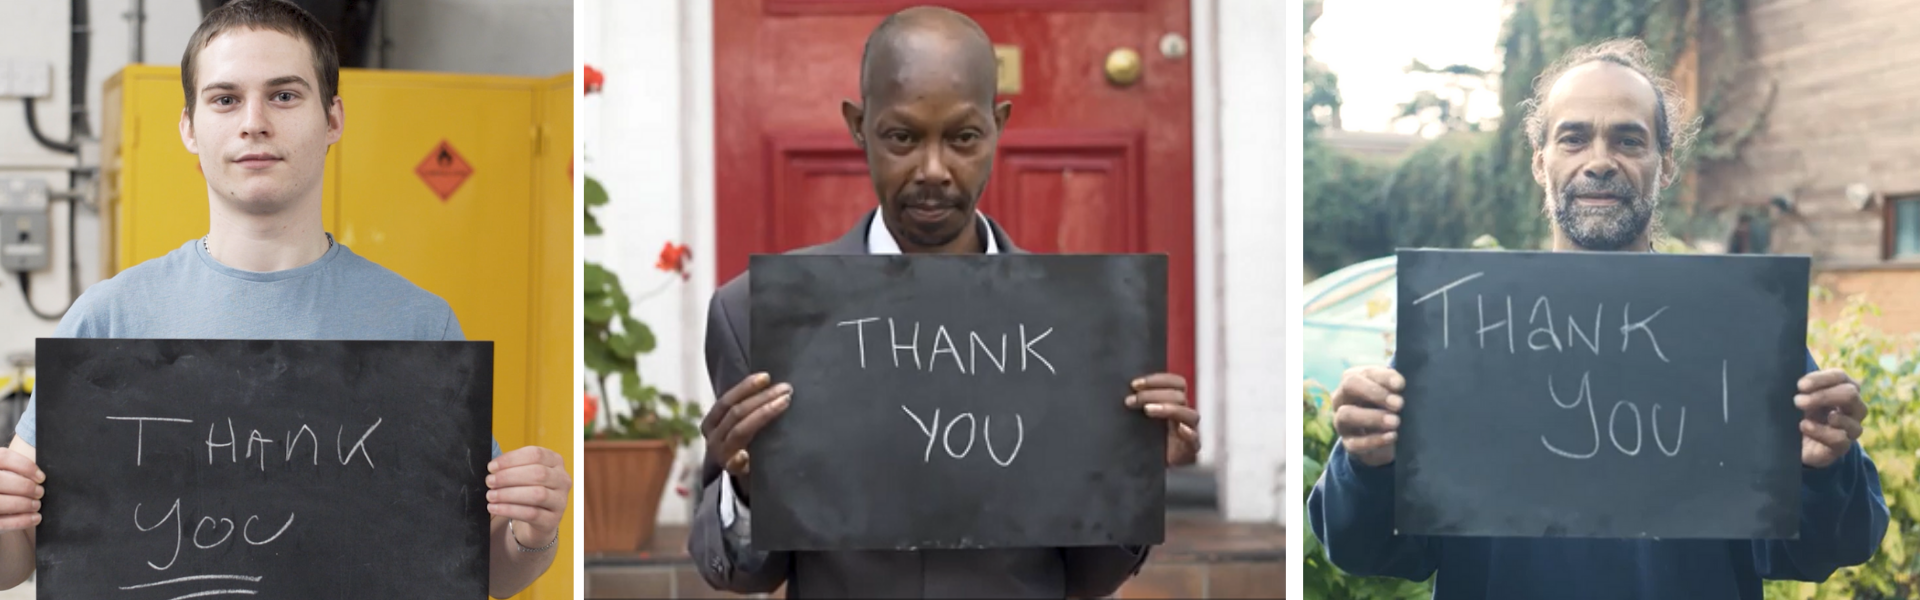 Image: Thank you corporate supporters